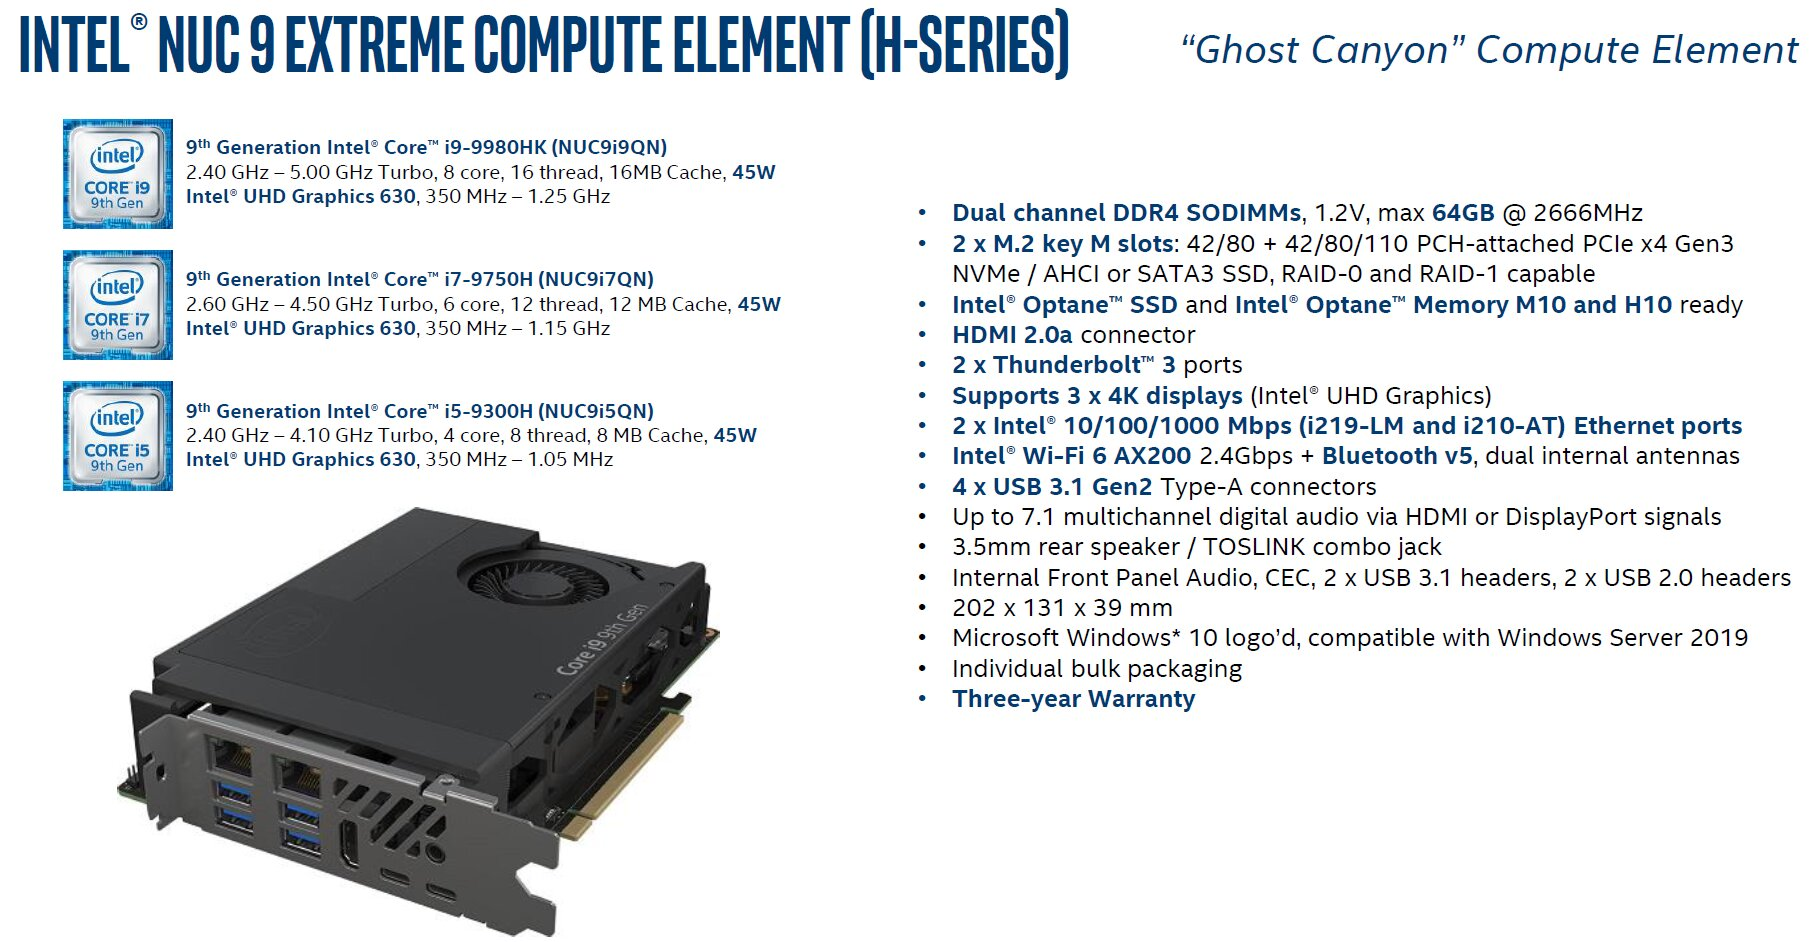 Intel Compute Element Ghost Canyon